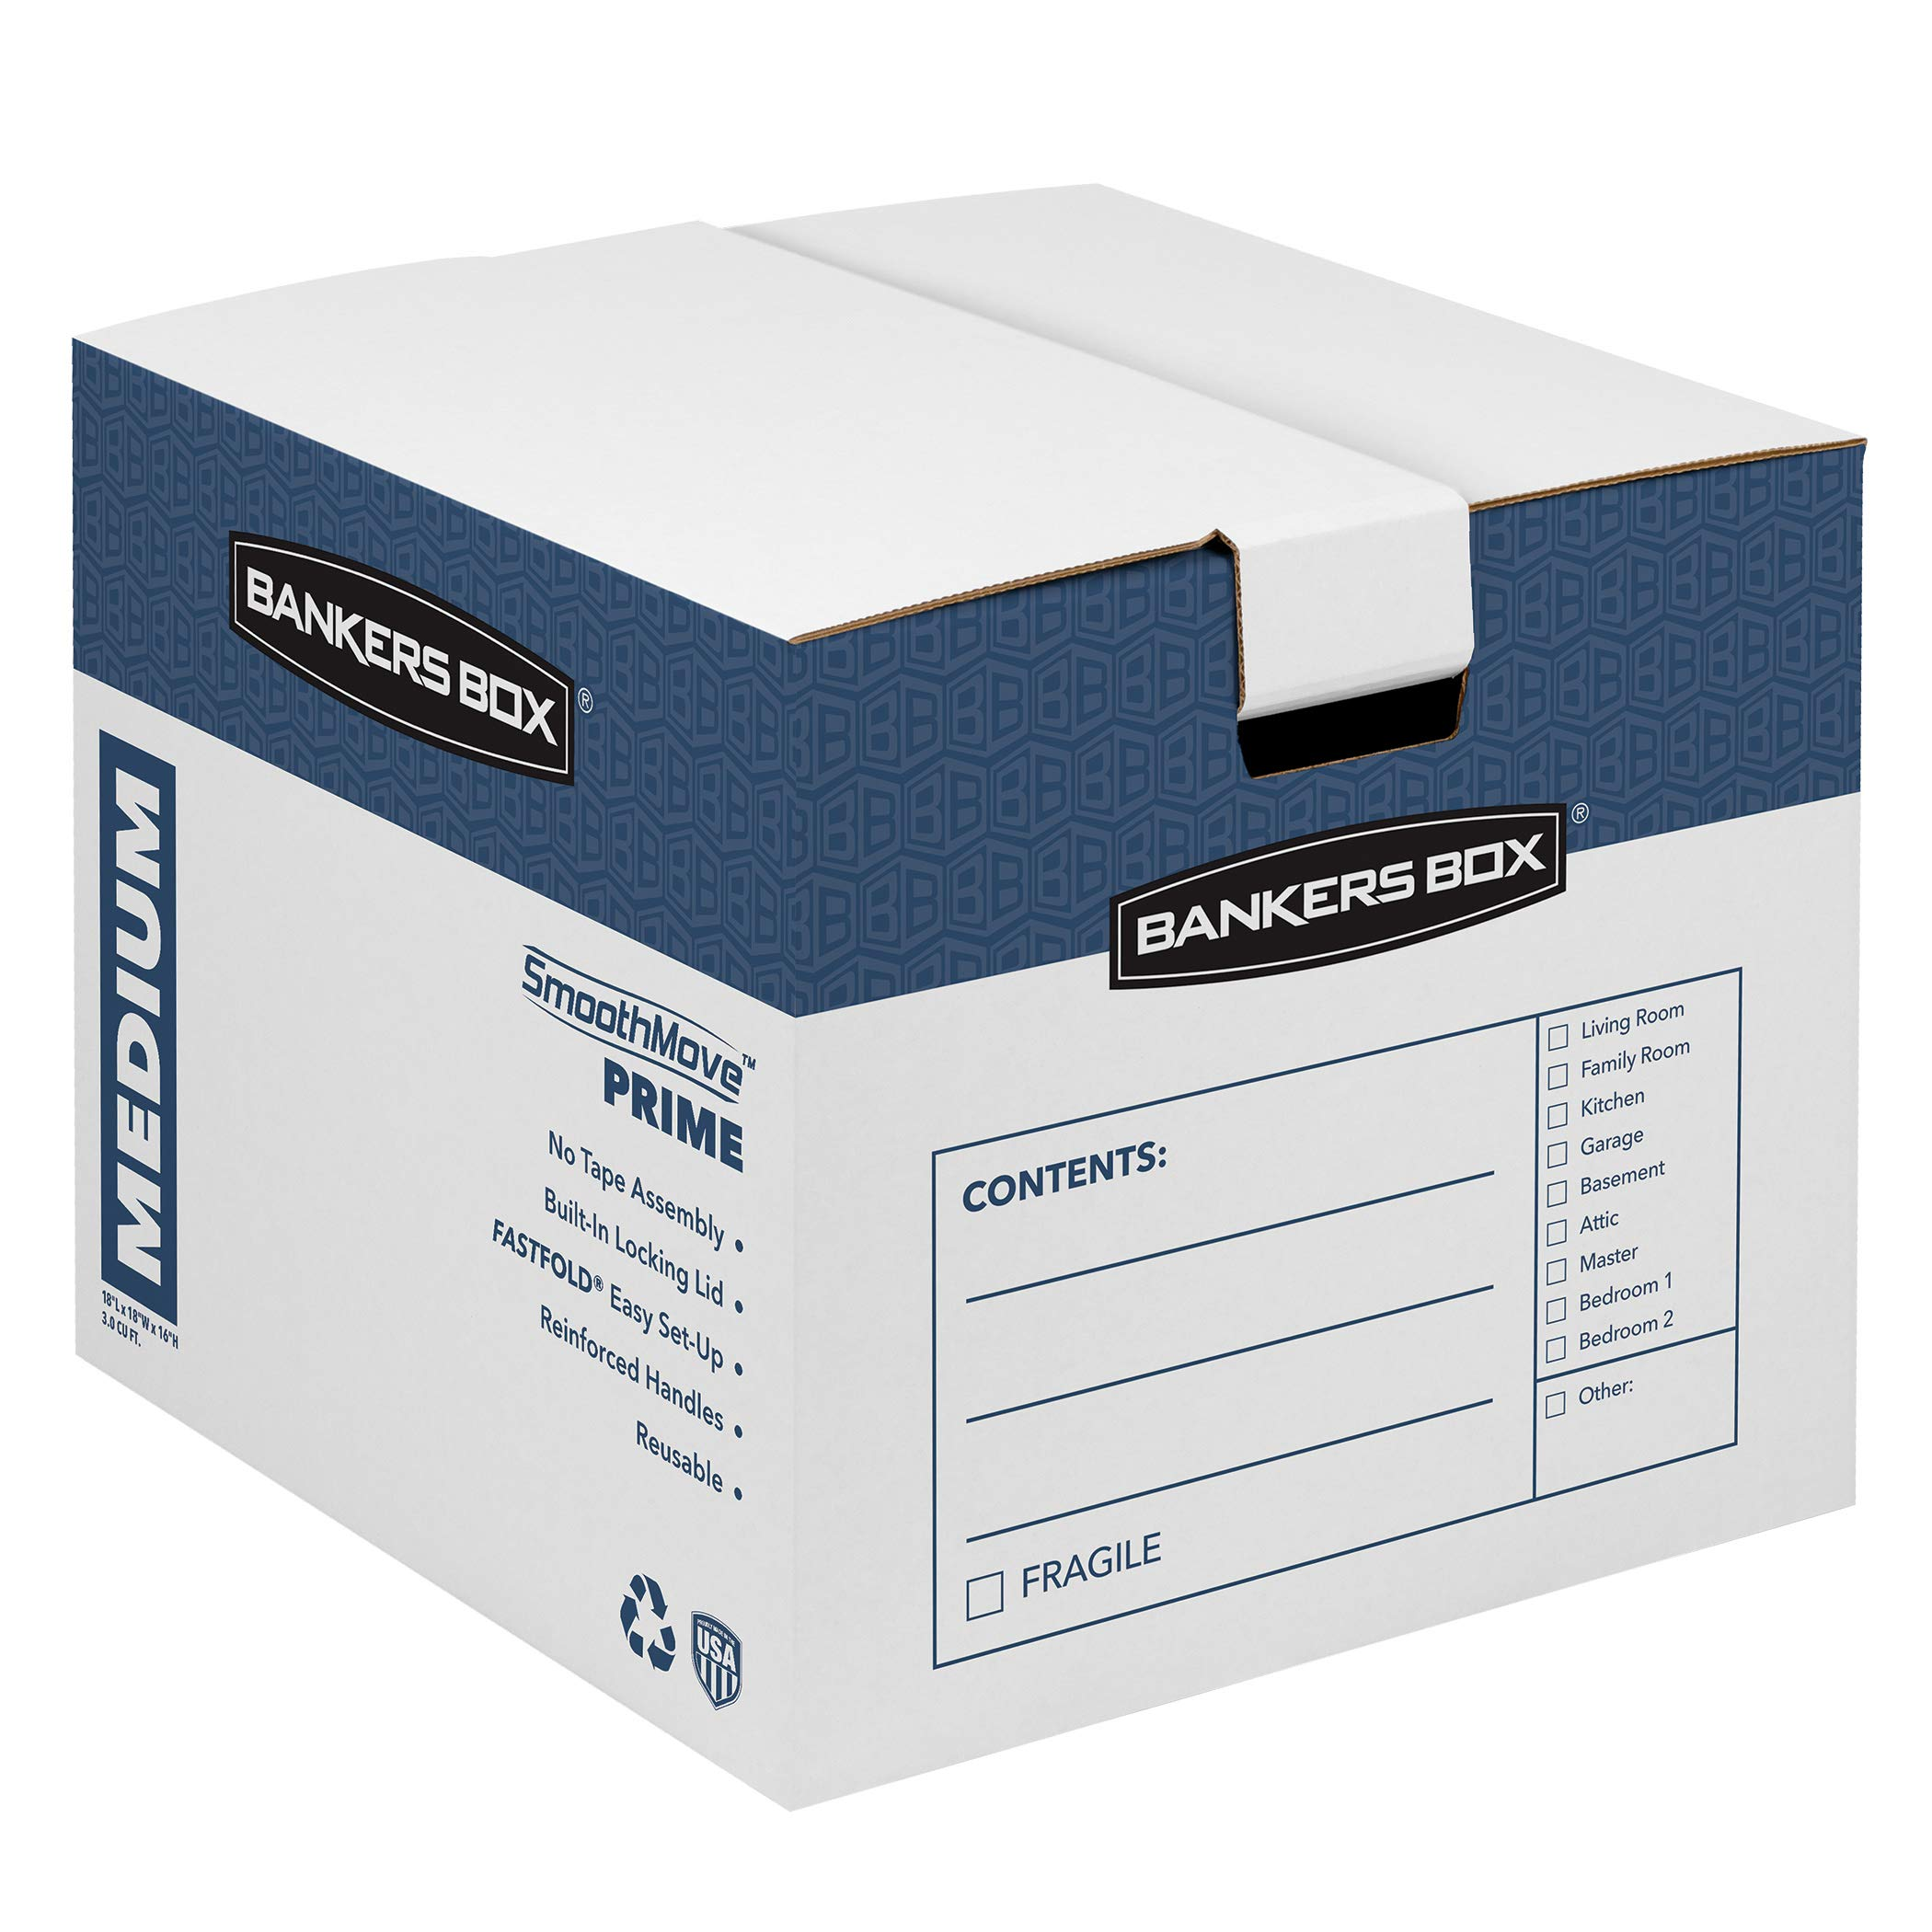 Bankers Box SmoothMove Prime Moving Boxes, Tape-Free, FastFold Easy Assembly, Handles, Reusable, White, Medium, 8 Pack